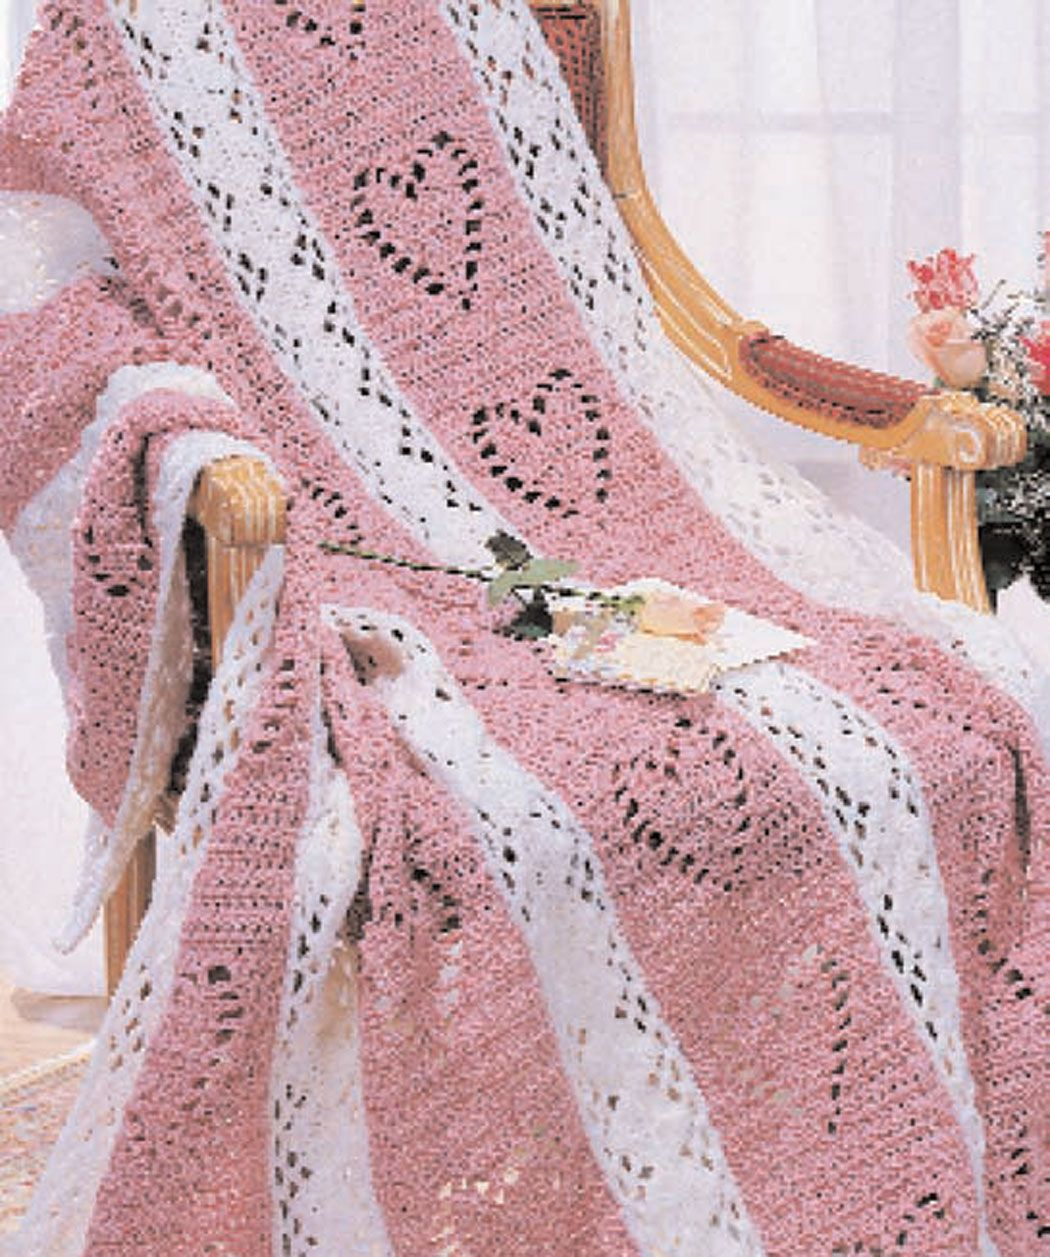 Hearts diamonds how pretty for a little girl or for a wedding hearts diamonds crochet afghan free pattern worsted weight yarn medium and us and us bankloansurffo Choice Image